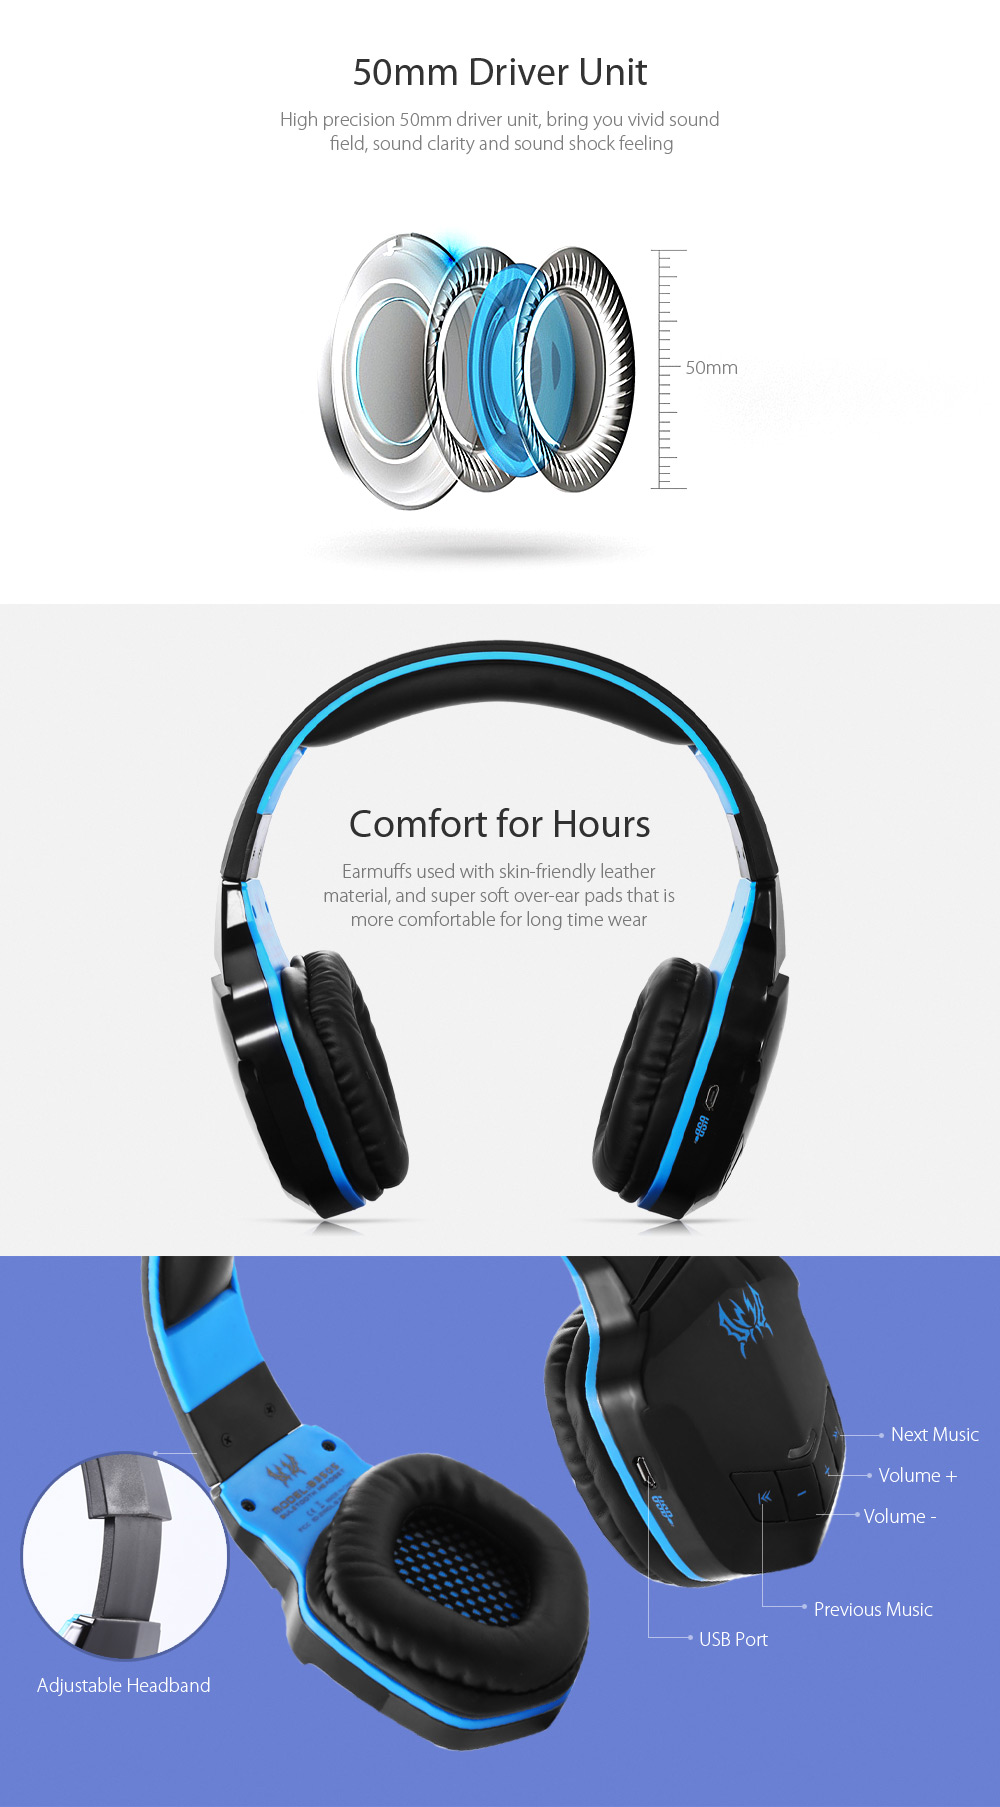 Kotion Each B3505 Wireless Headphones For Pc 2327 Free Shipping Ems Adjustable Headband Green Gold Baby Earmuff Package Contents 1 X Gaming Headset Multilanguage User Manual Usb Cable 60cm 35mm Jack 117cm